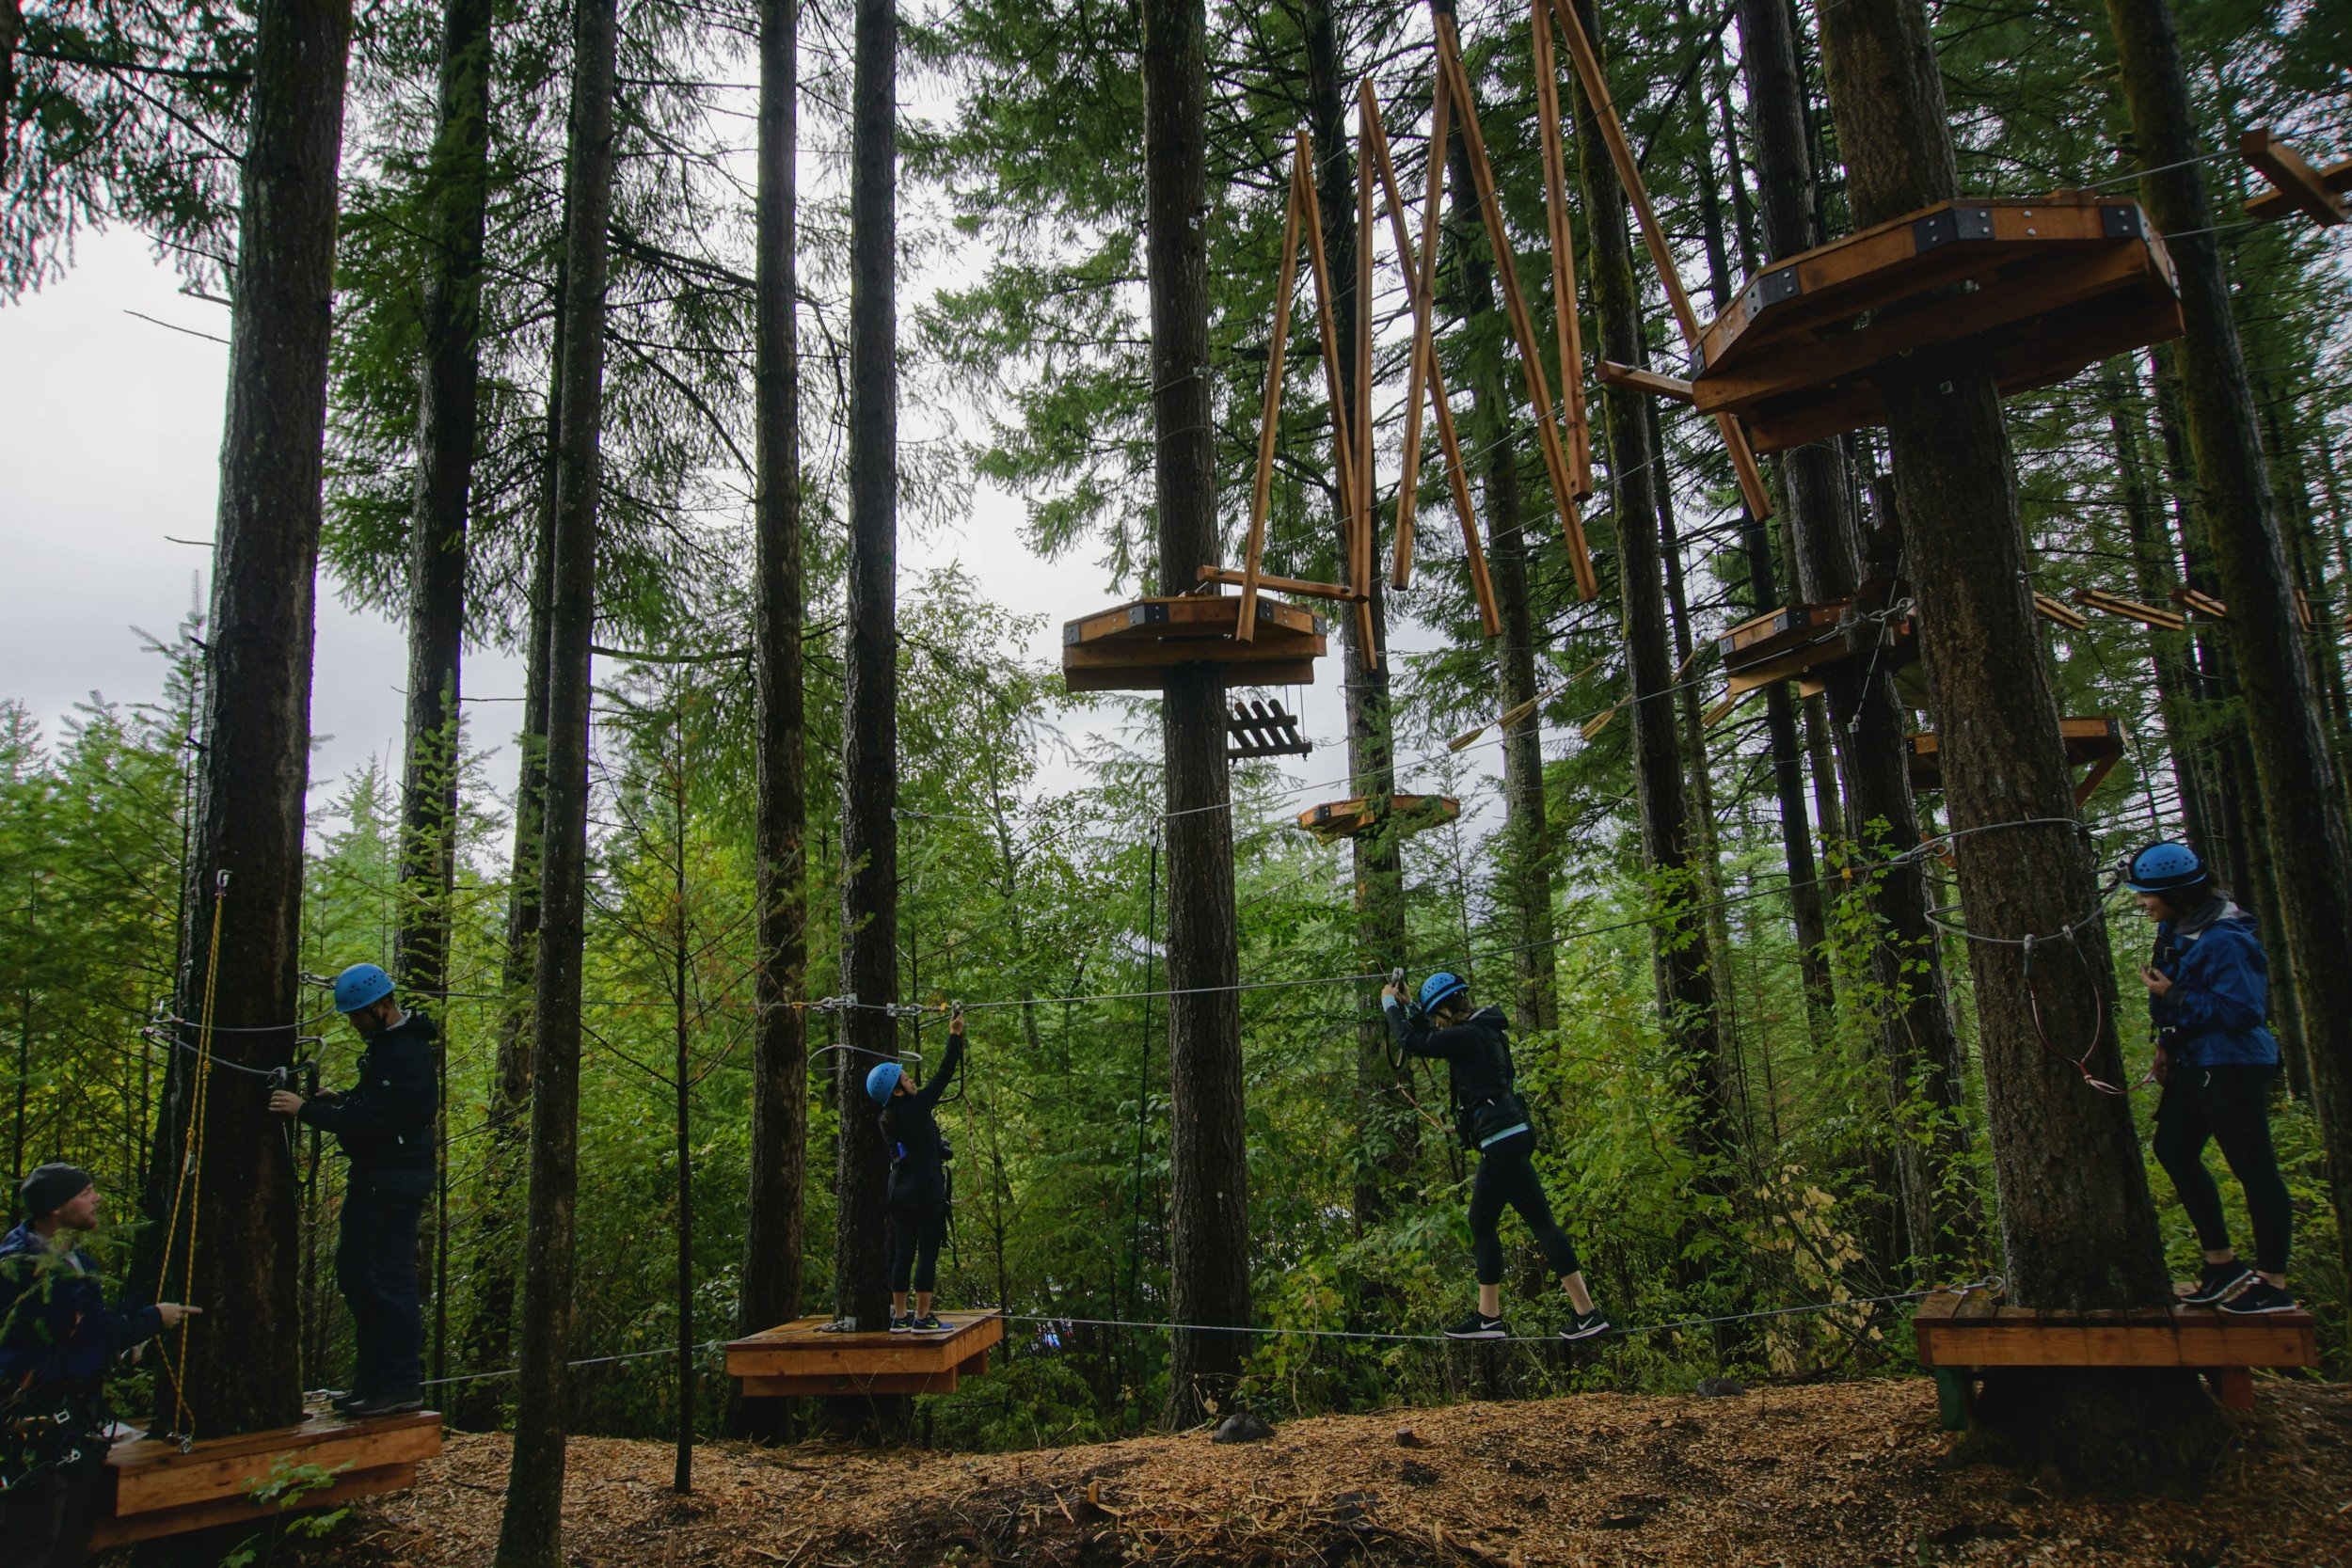 Skamania Lodge Aerial Park